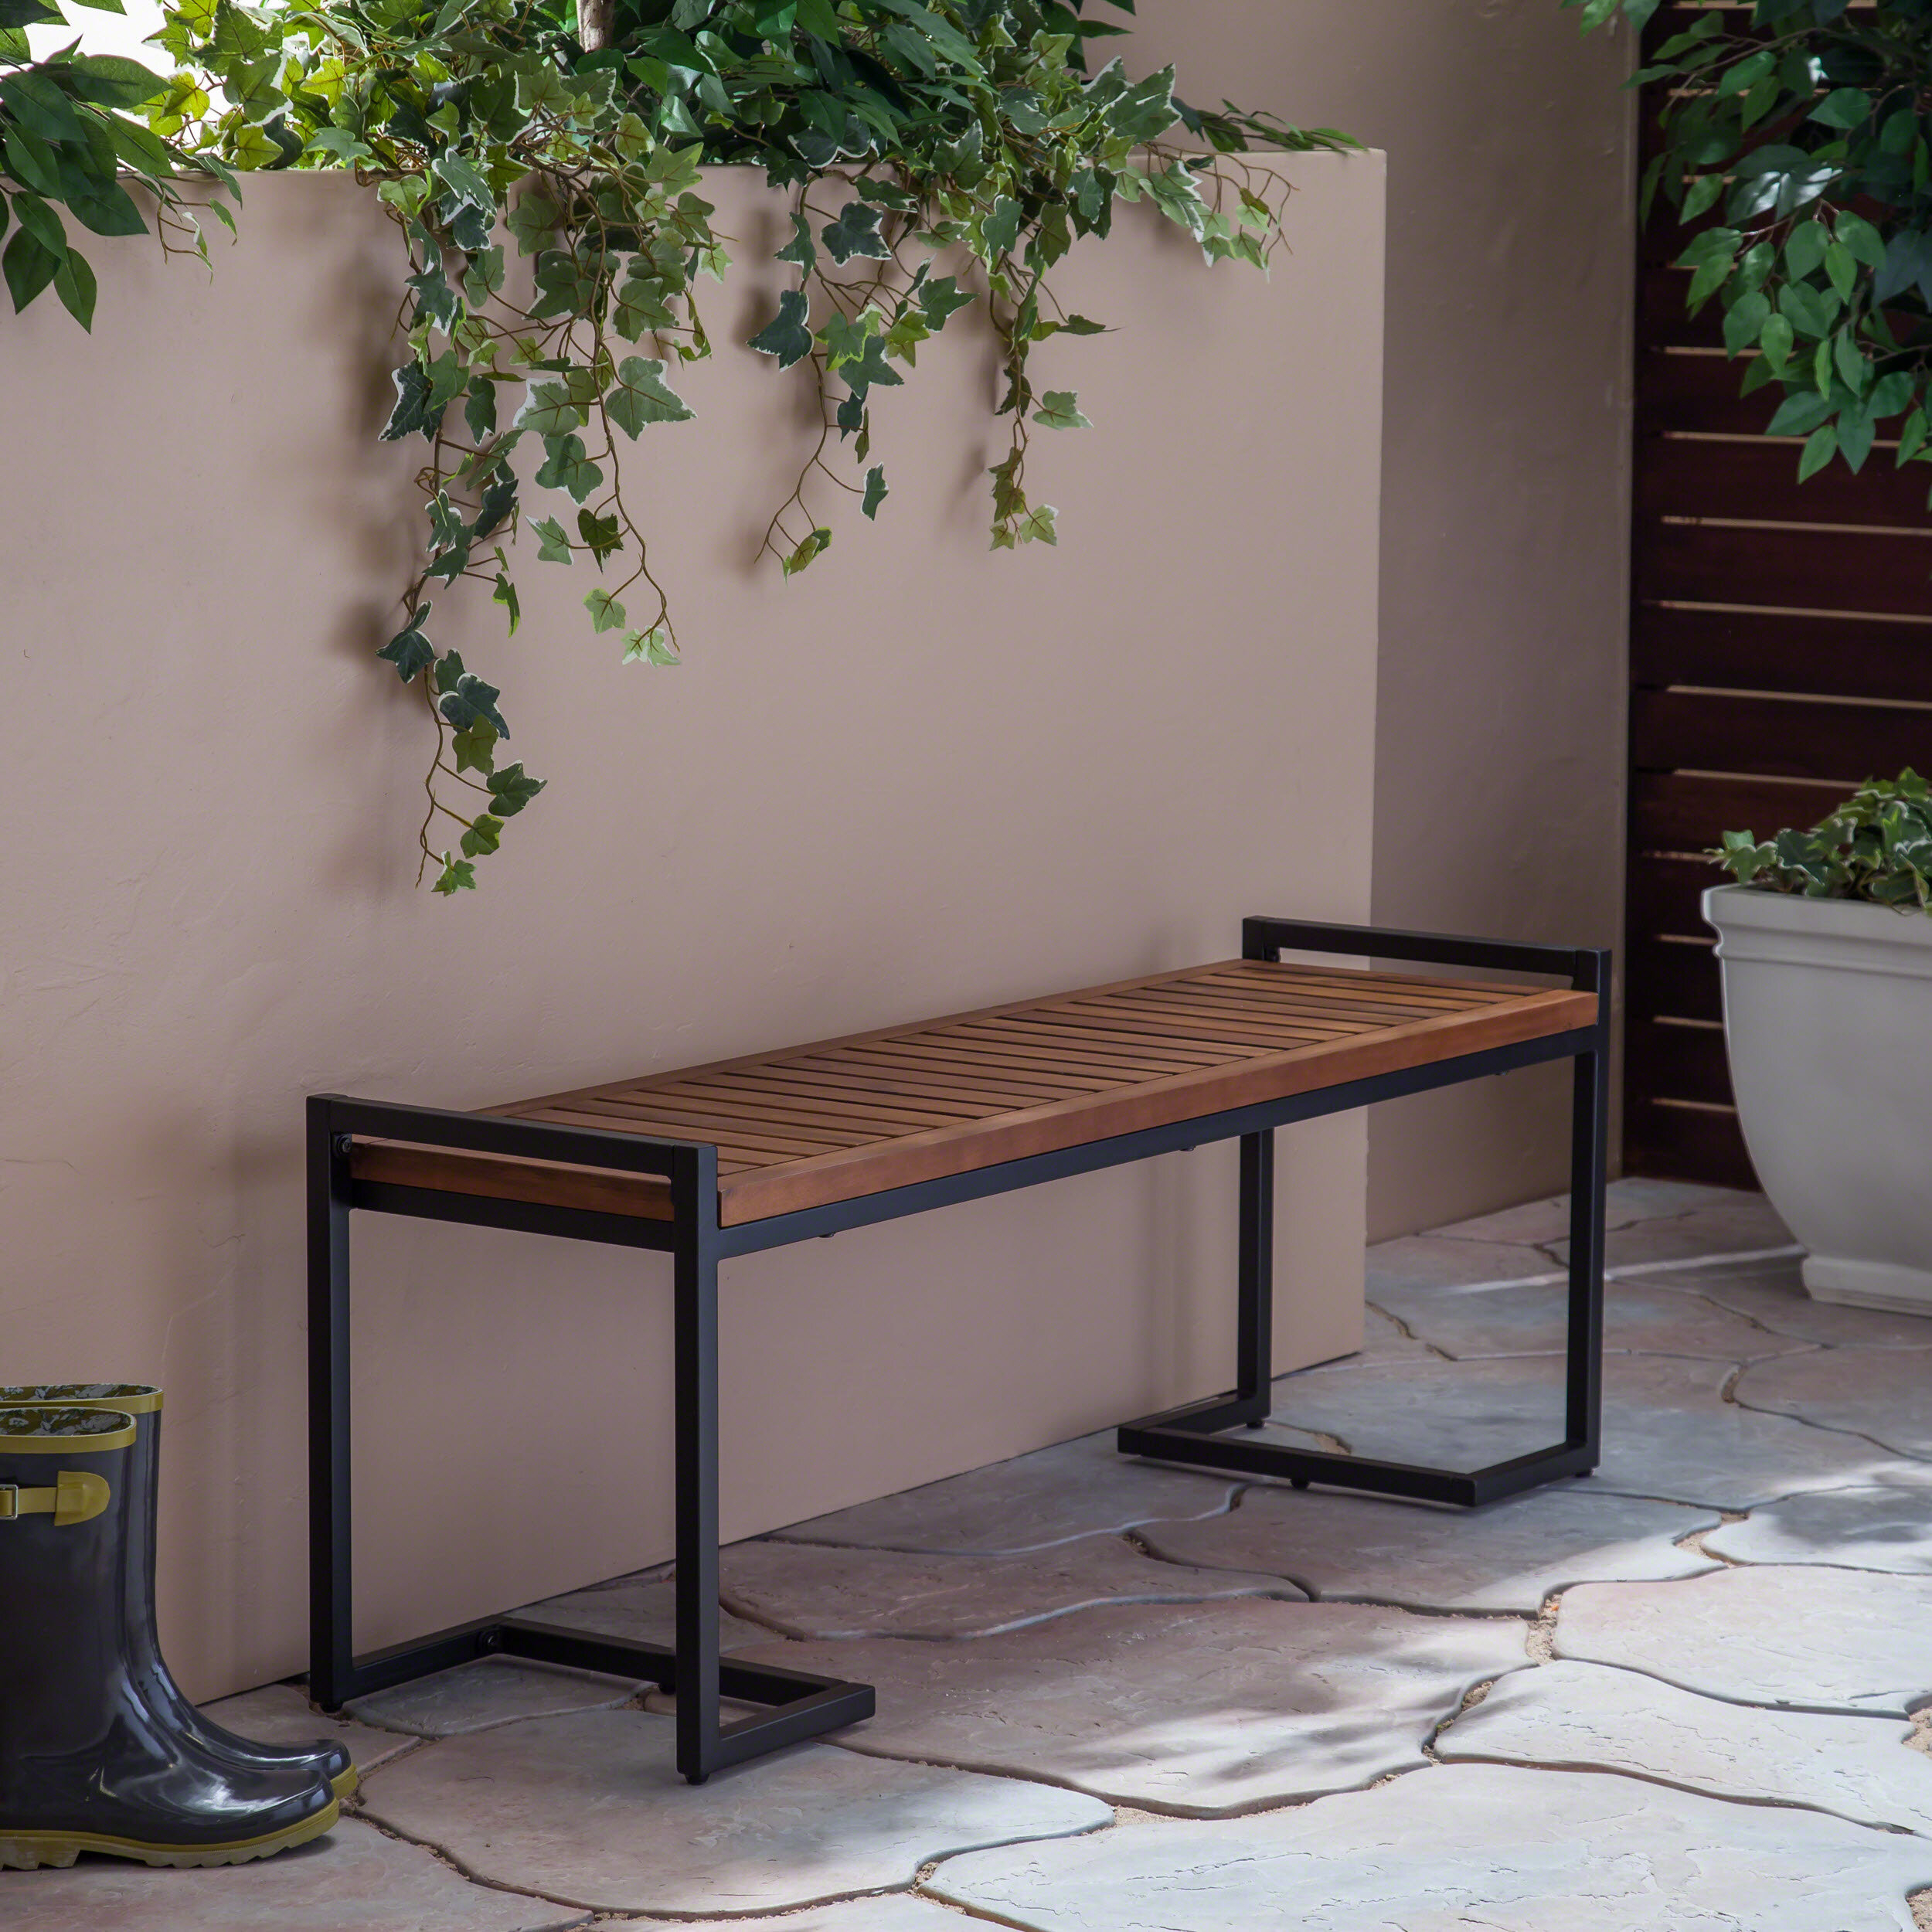 Cushionless Outdoor Benches You'Ll Love In 2020 | Wayfair For Aranita Tree Of Life Iron Garden Benches (View 22 of 25)